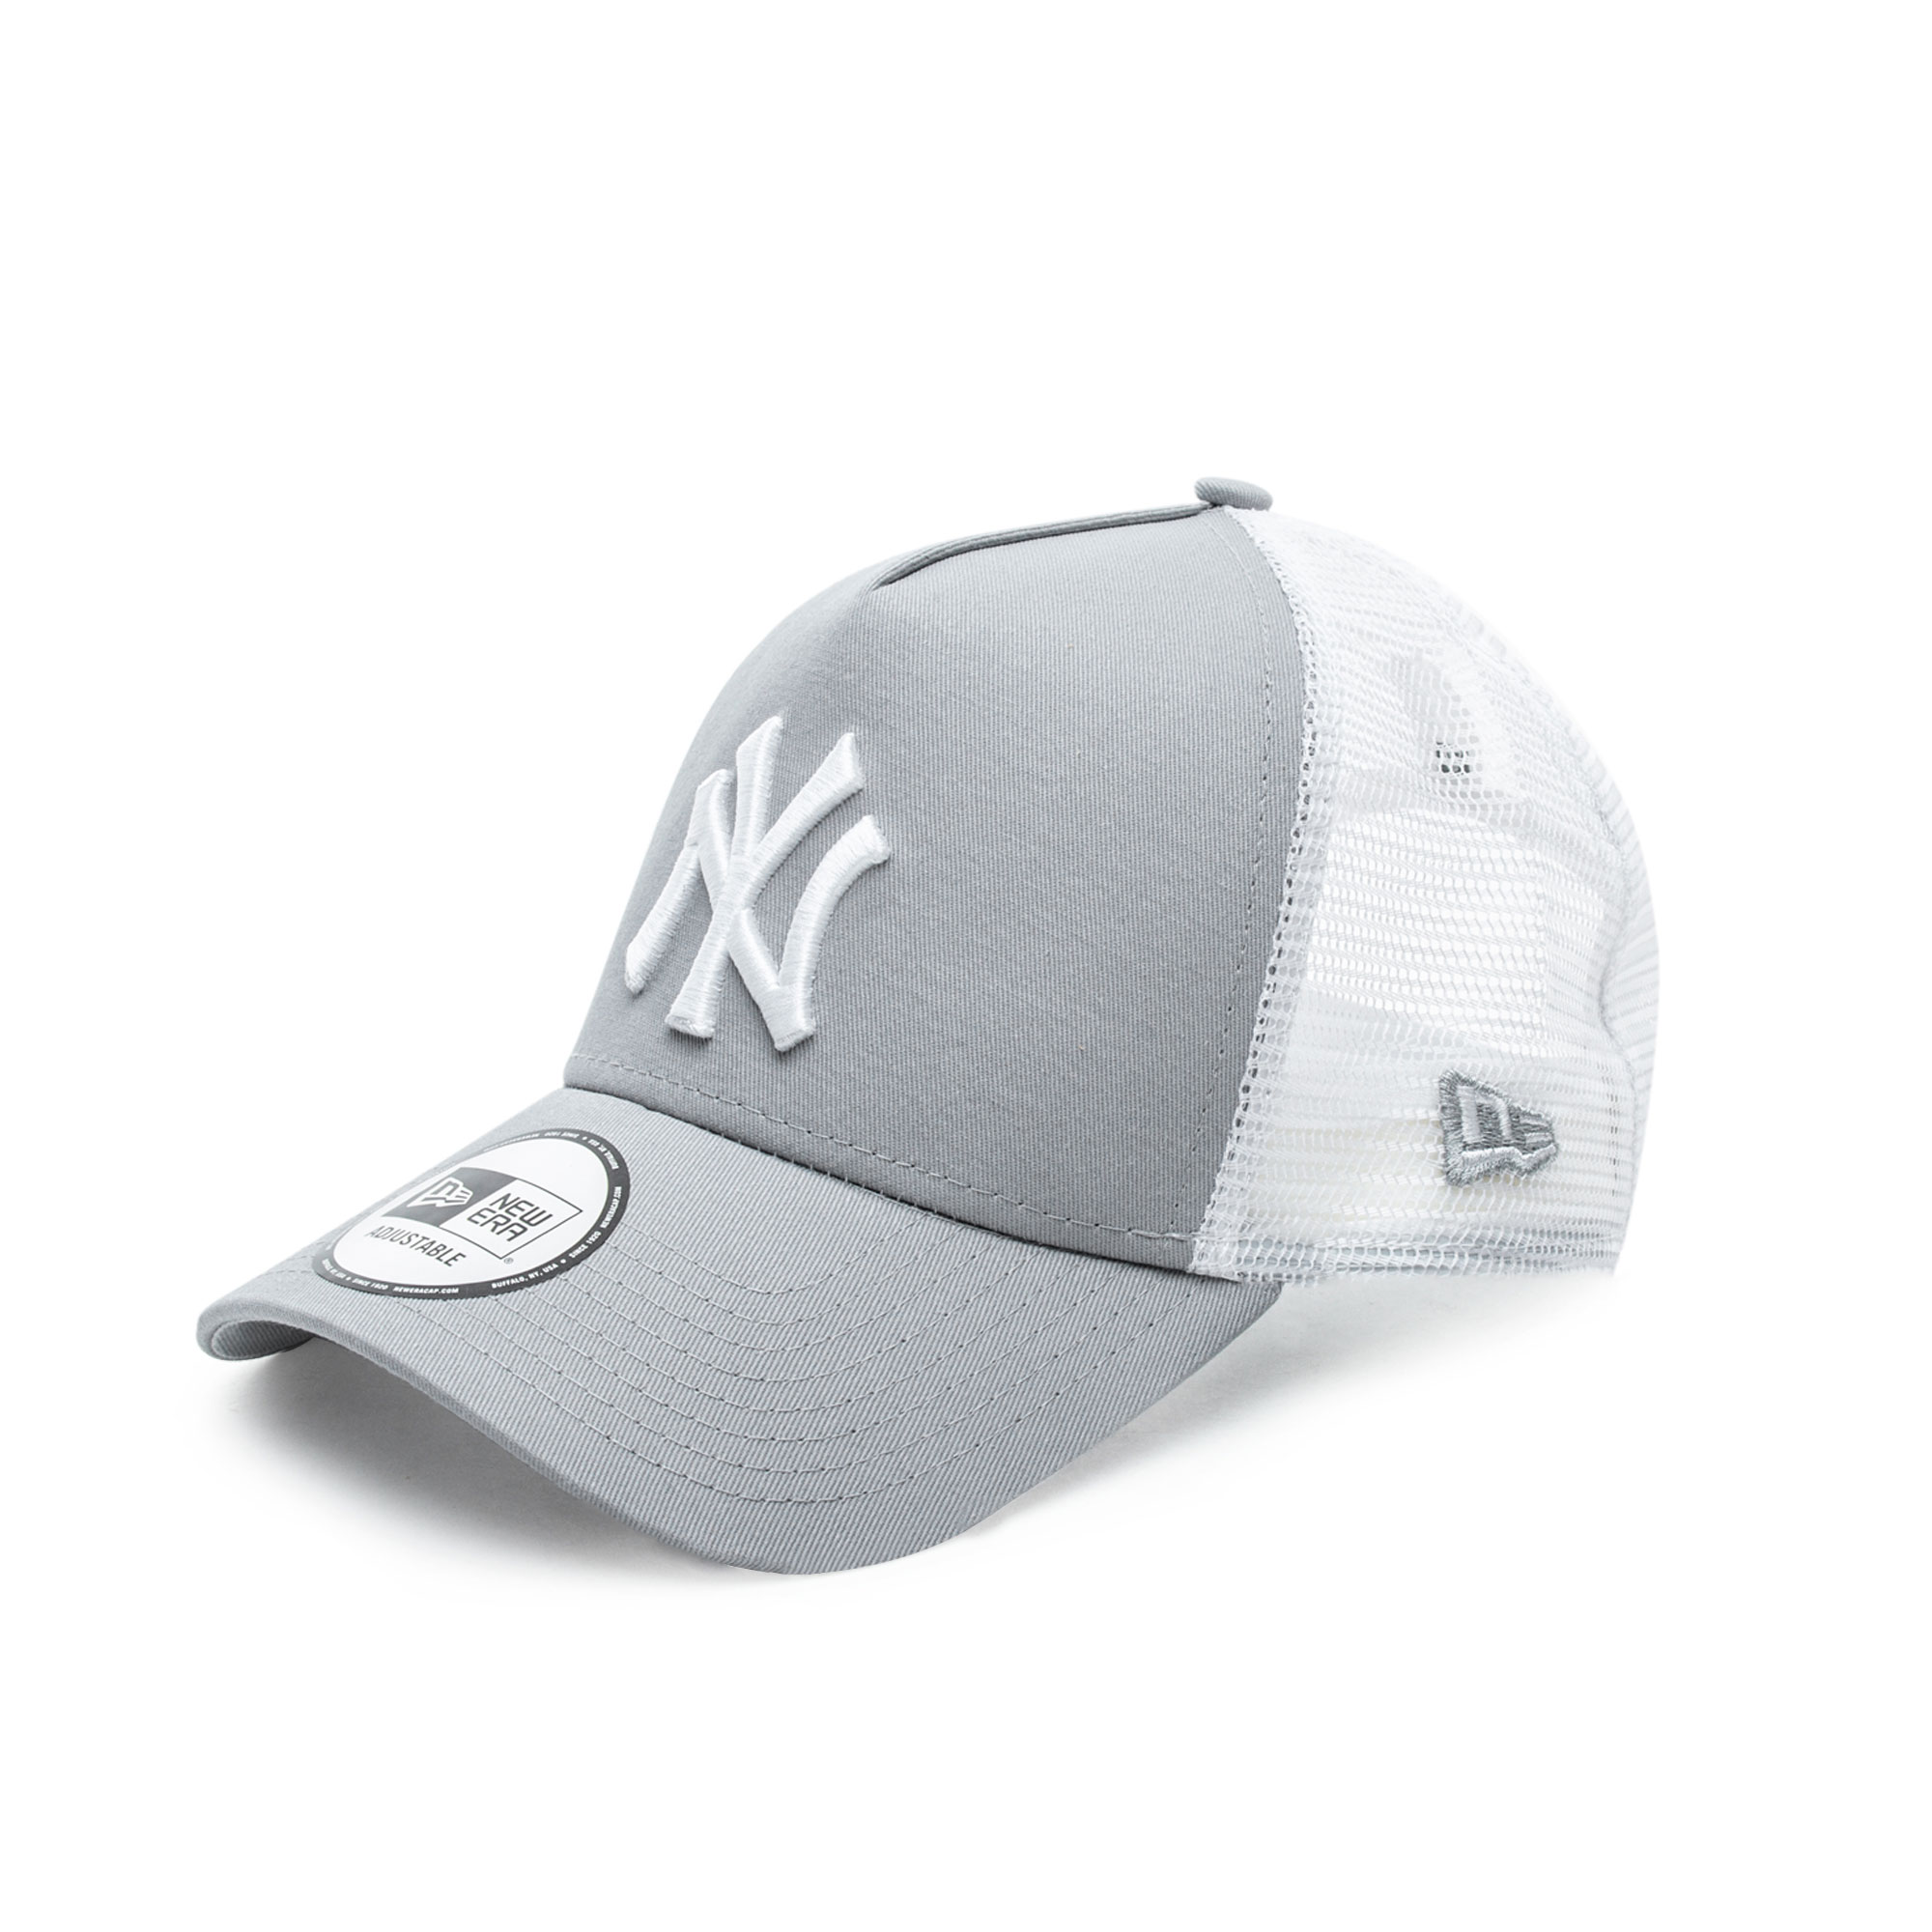 New Era New York Yankees Unisex Gri Şapka.11588490.-